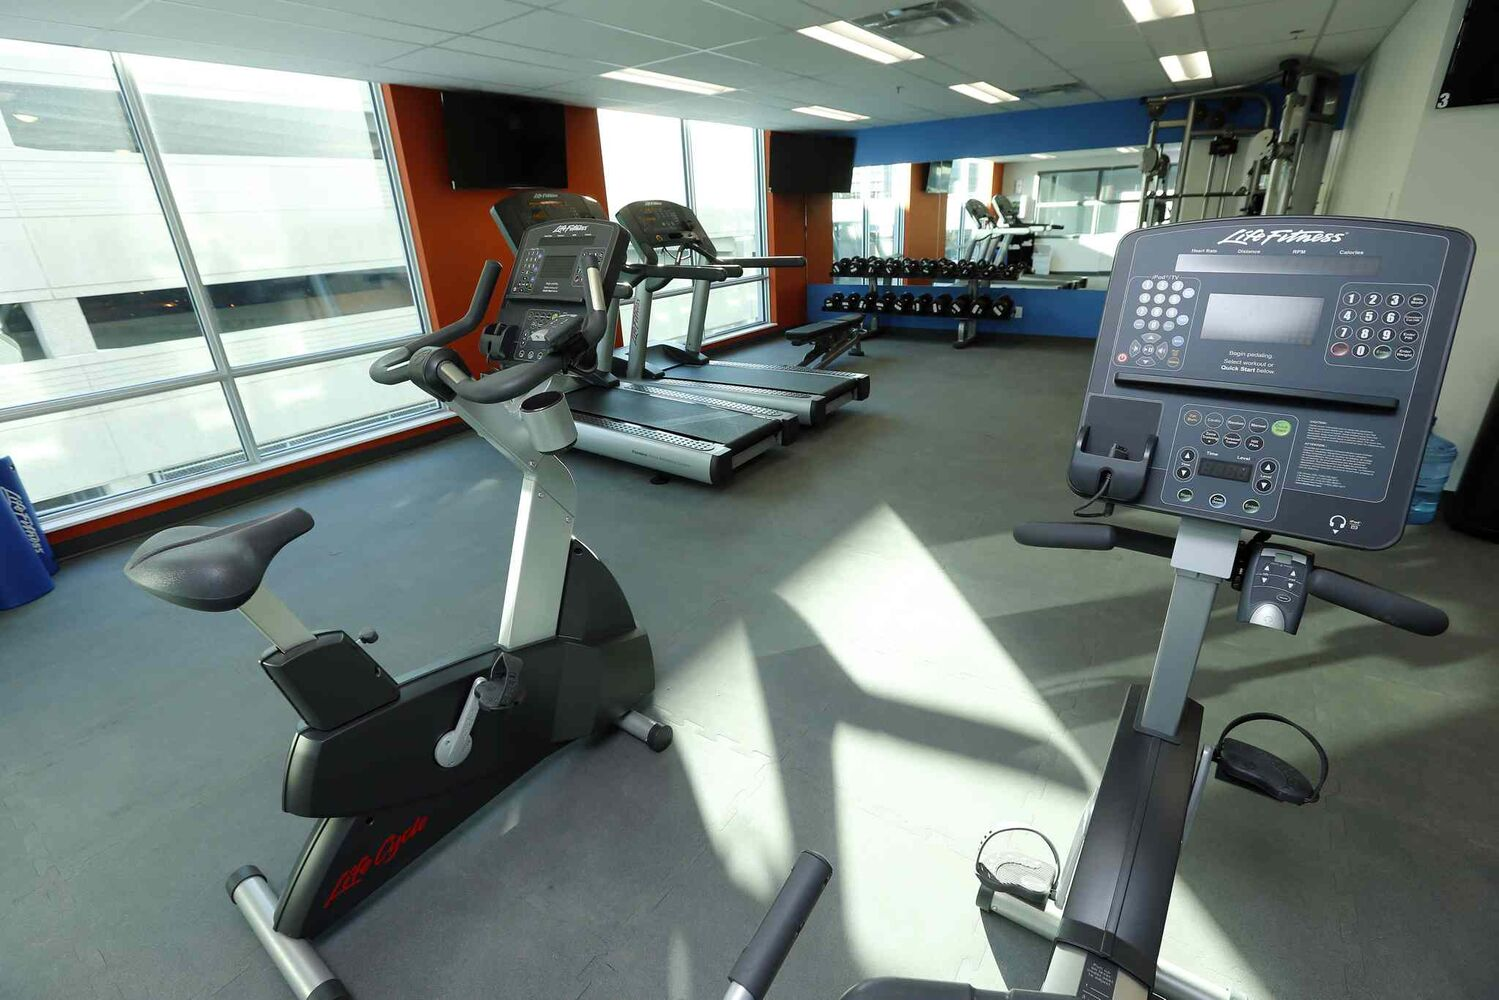 The exercise room . (KEN GIGLIOTTI / WINNIPEG FREE PRESS)